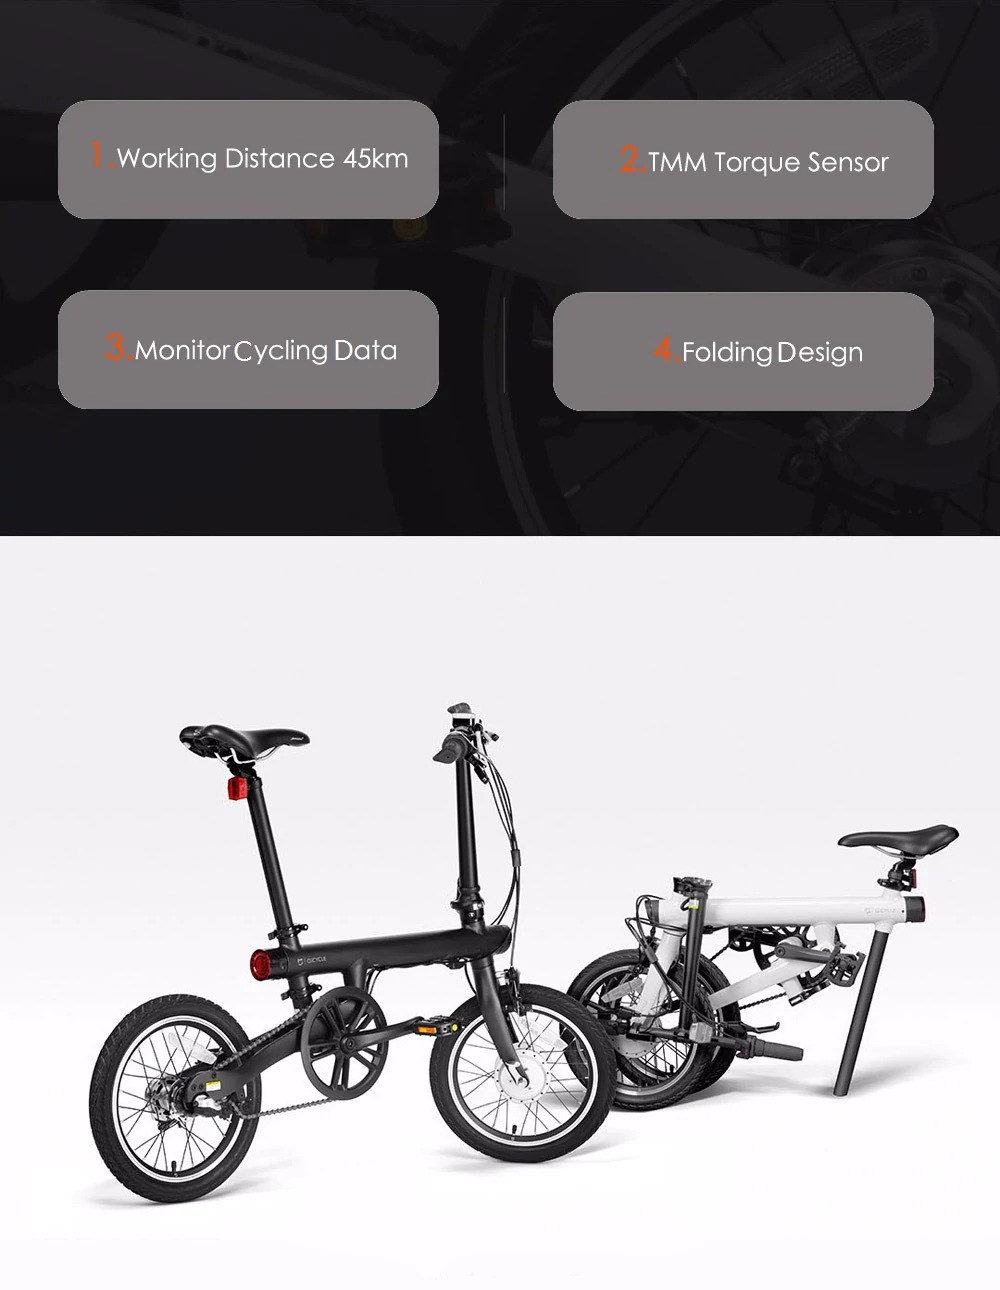 HTB1g9I1E25TBuNjSspcq6znGFXaG - 16inch Origina XIAOMI electrical bike Qicycle EF1 Mini electrical Ebike good folding  bike lithium battery mijia  CITY EBIKE